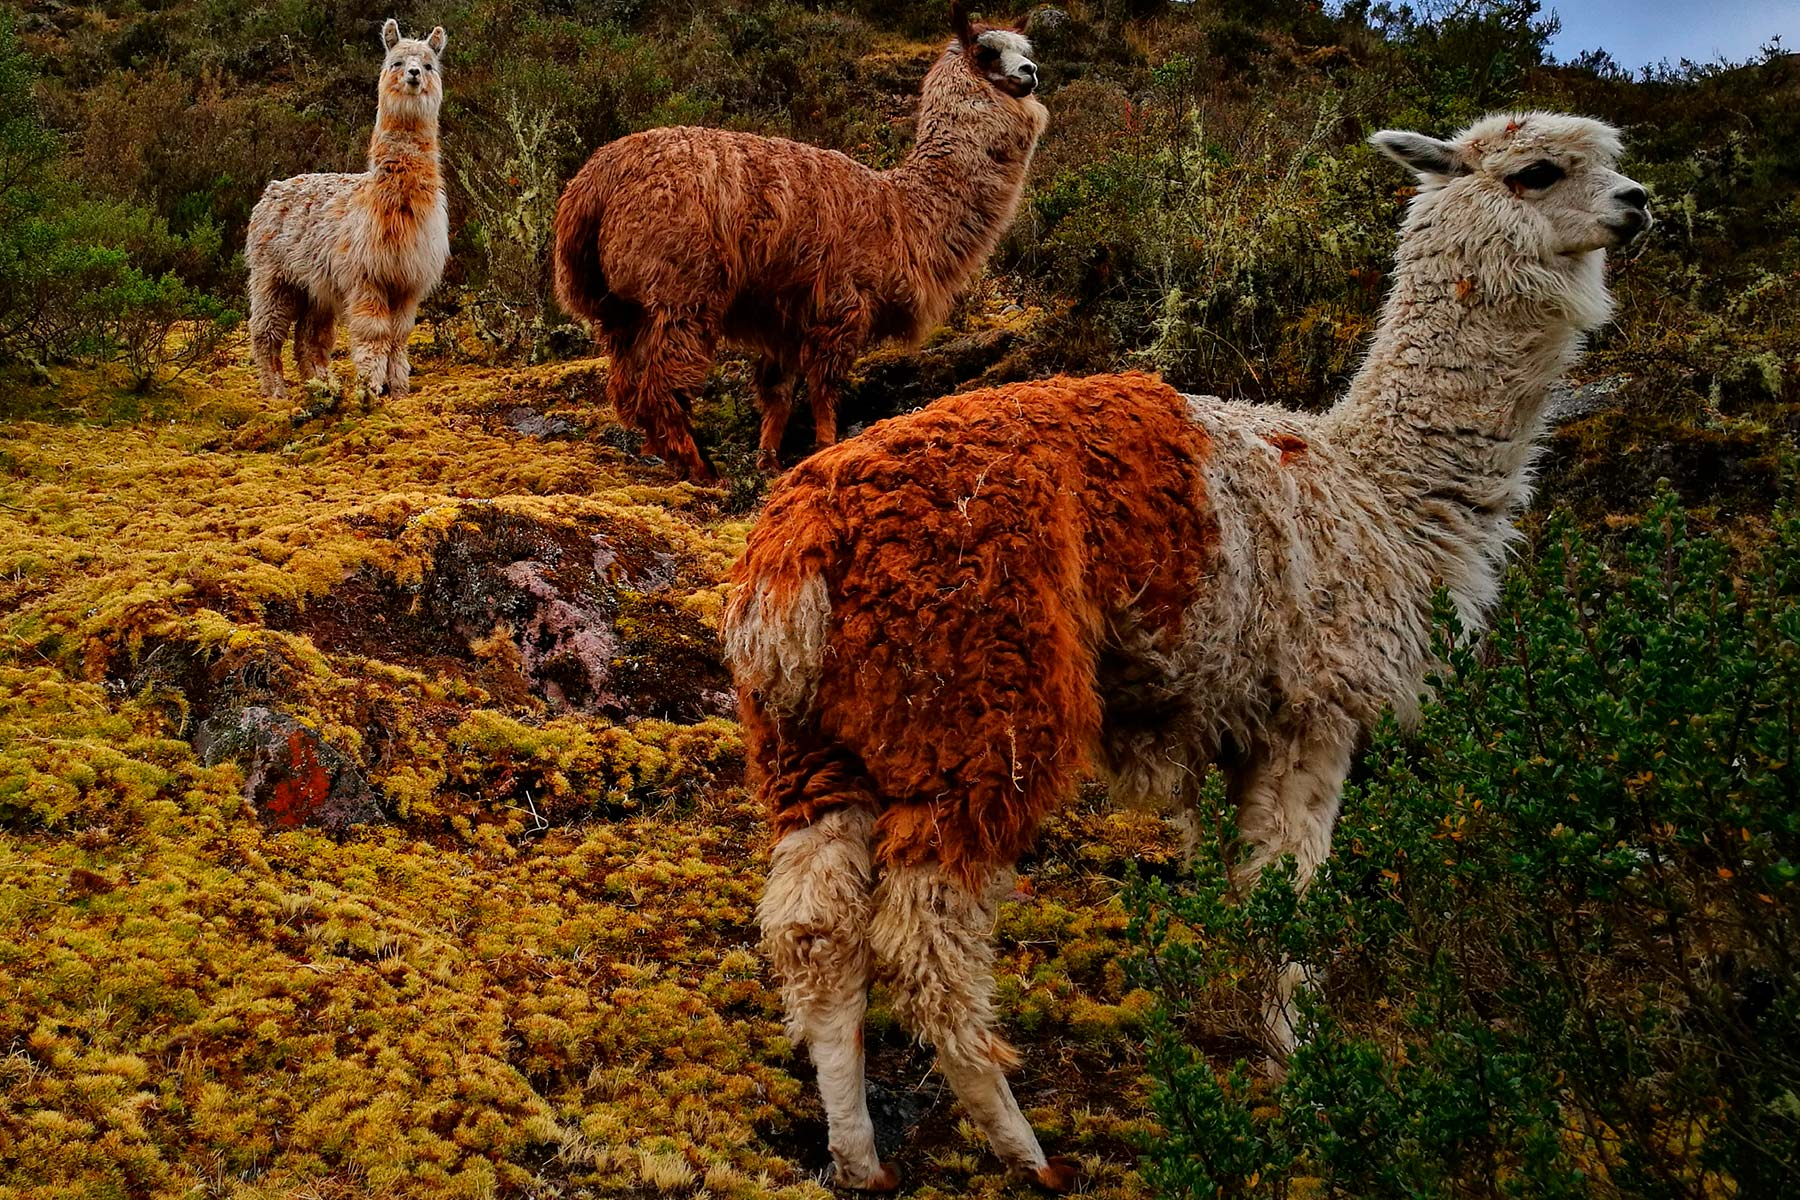 Llama or Alpaca encounter in Peru